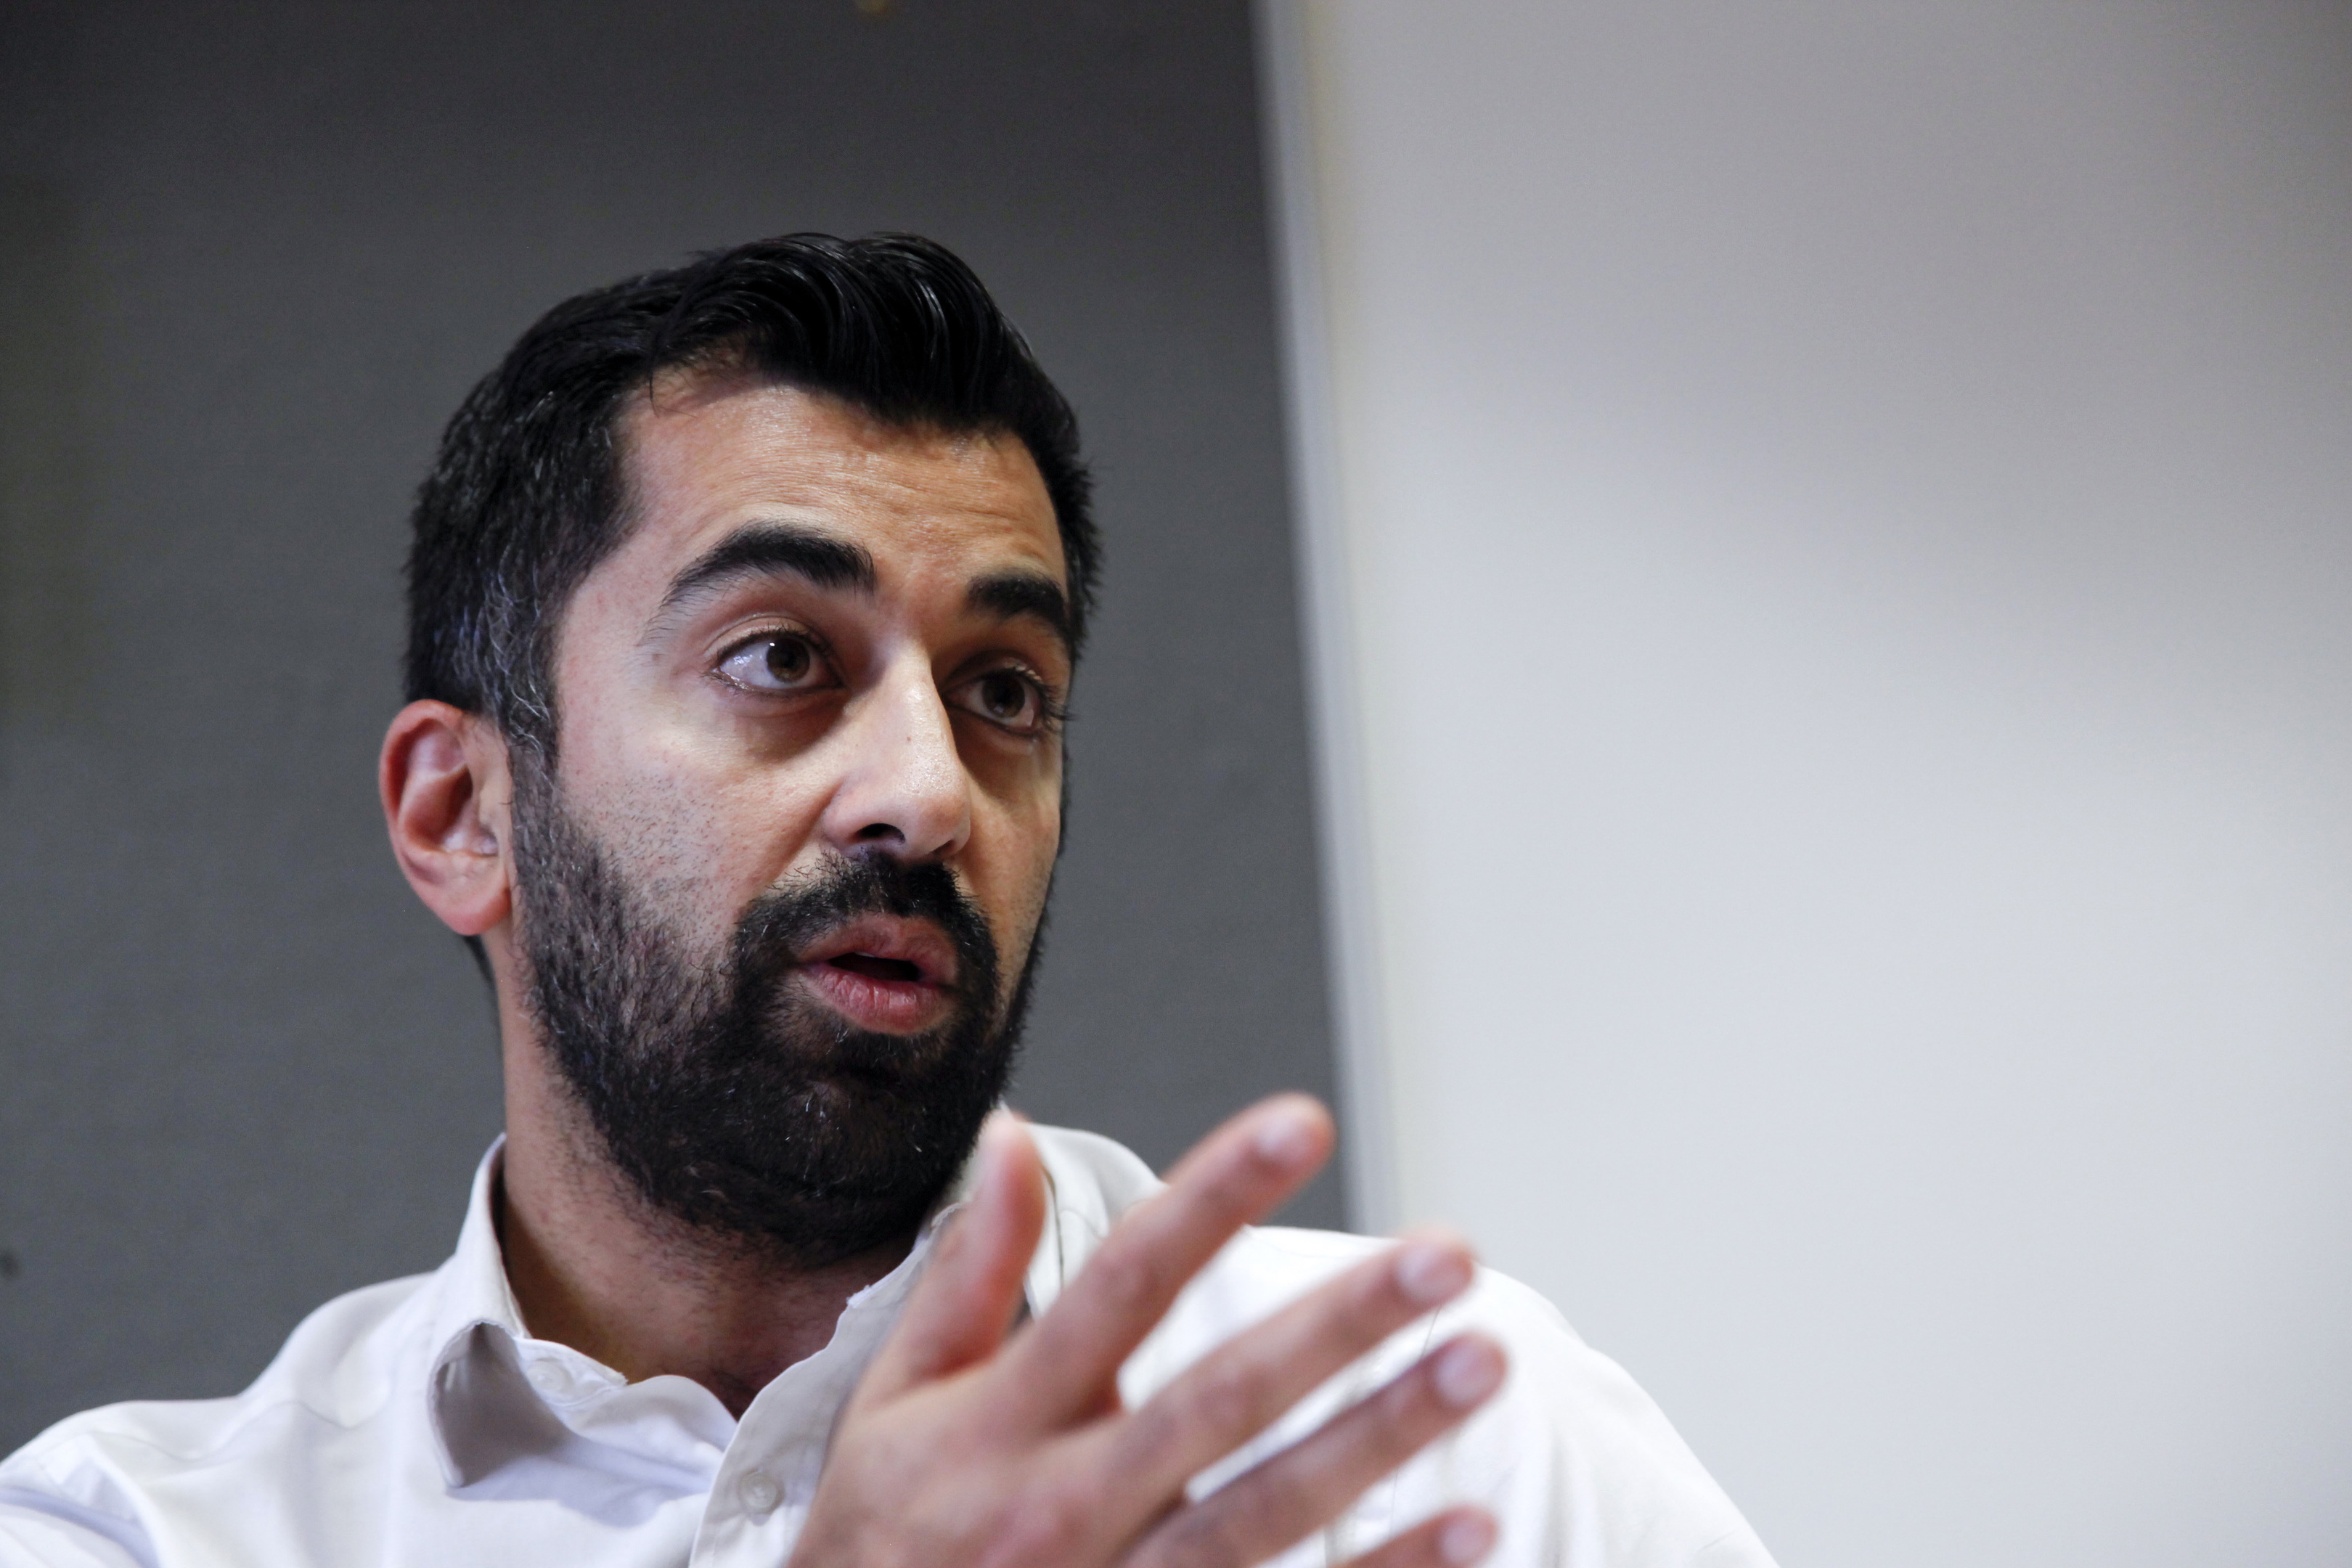 Humza Yousaf MSP being interviewed at the Scottish Parliament (Alistair Linford)